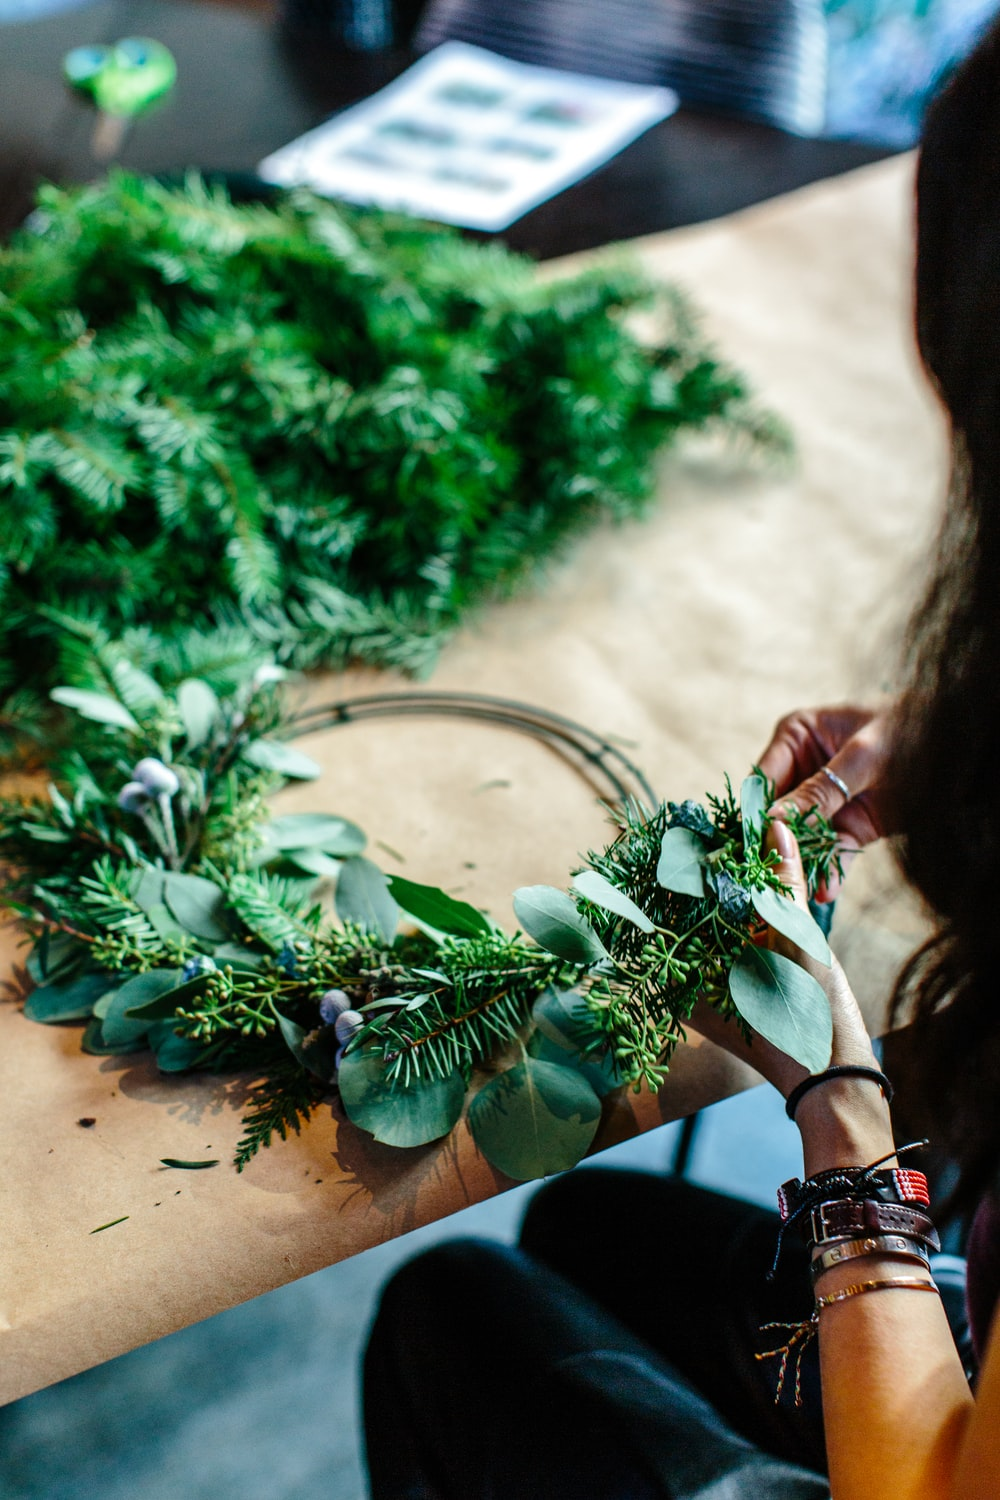 woman making green floral wreath on table